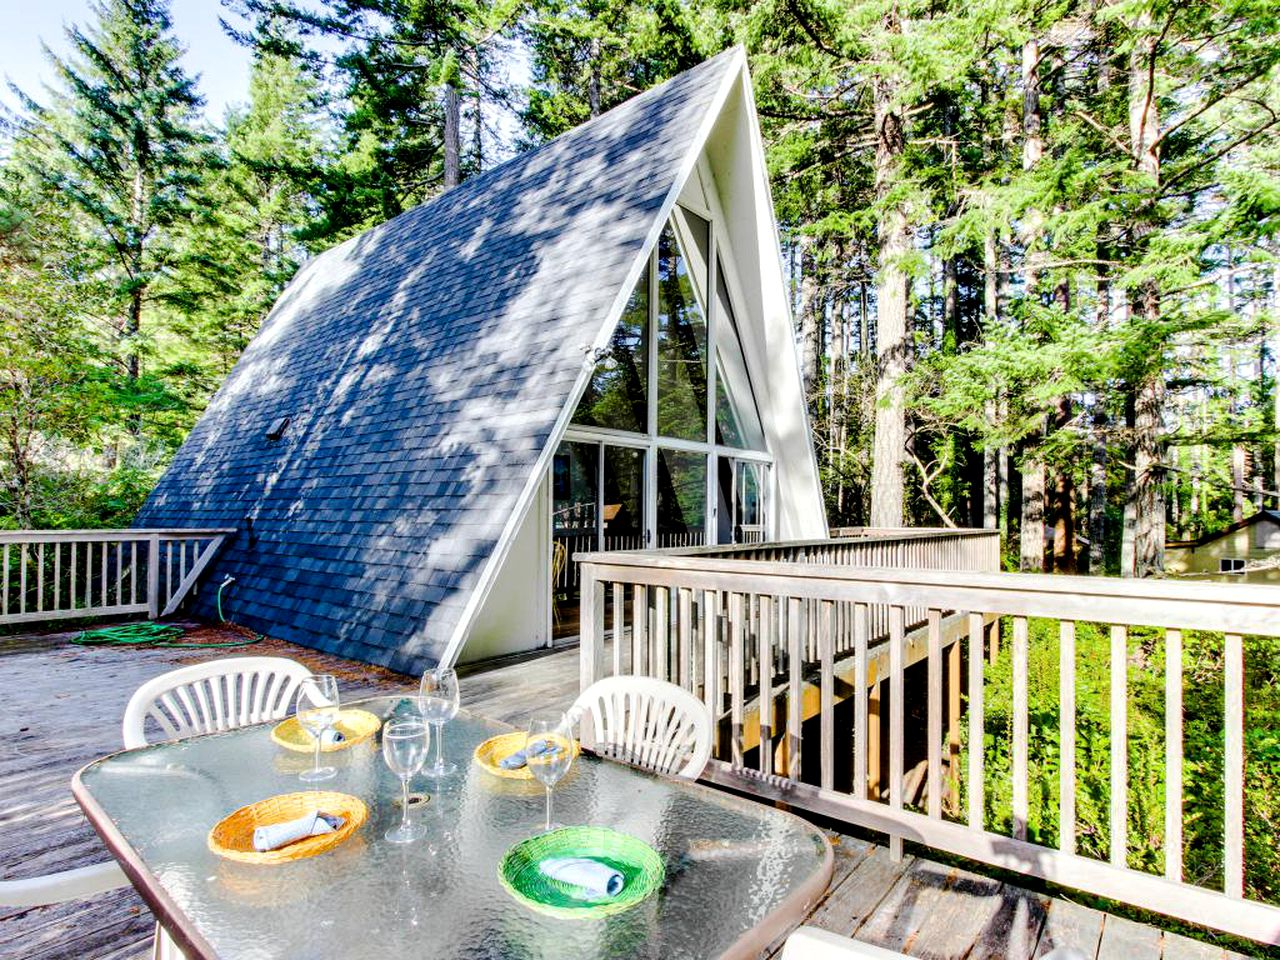 A-Frame Cabins (Florence, Oregon, United States)